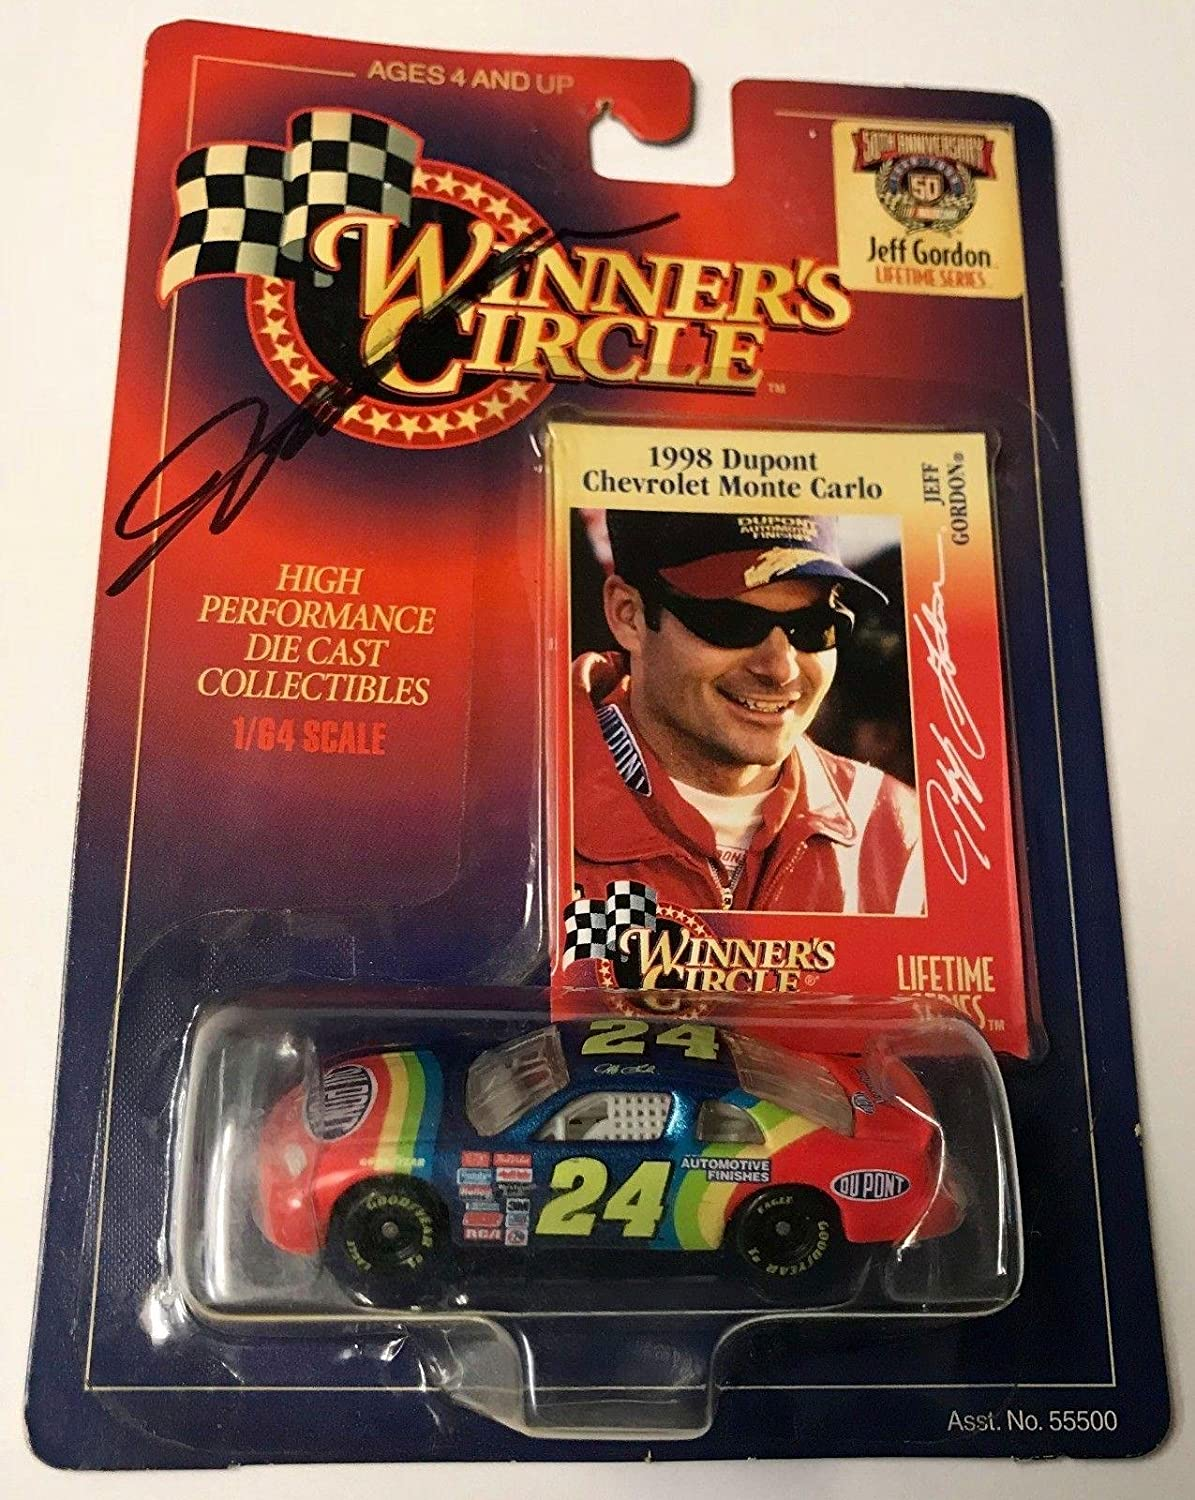 1997 Winners Circle Jeff Gordon 1998 Dupont Automotive Signed 1/64 Diecast Car - Autographed Diecast Cars Sports Memorabilia